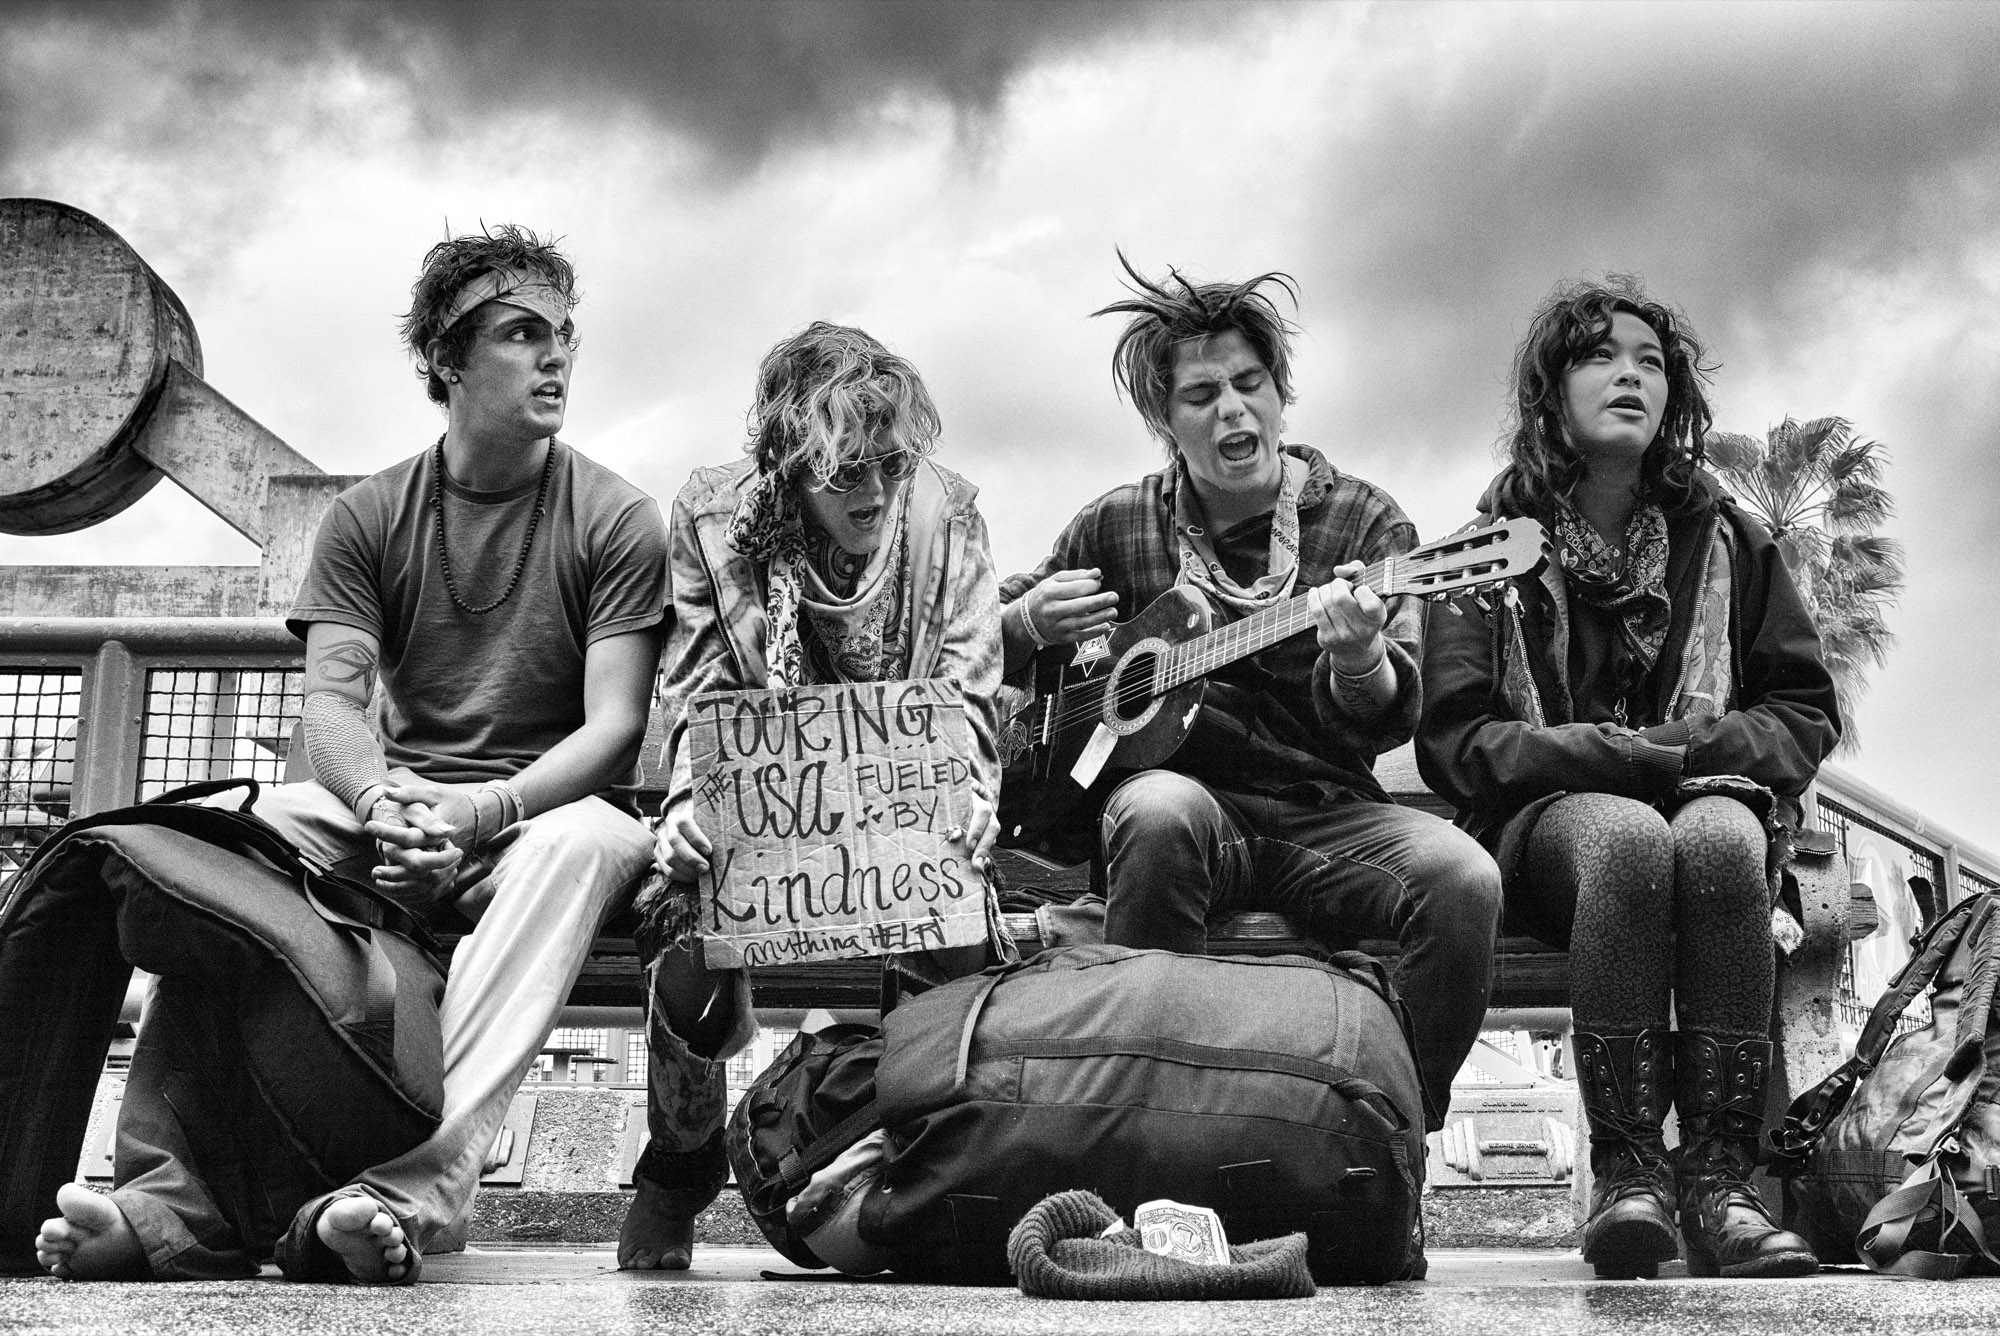 A group of young hippies sing on a bench across from the Muscle Beach Gym. © Dotan Saguy